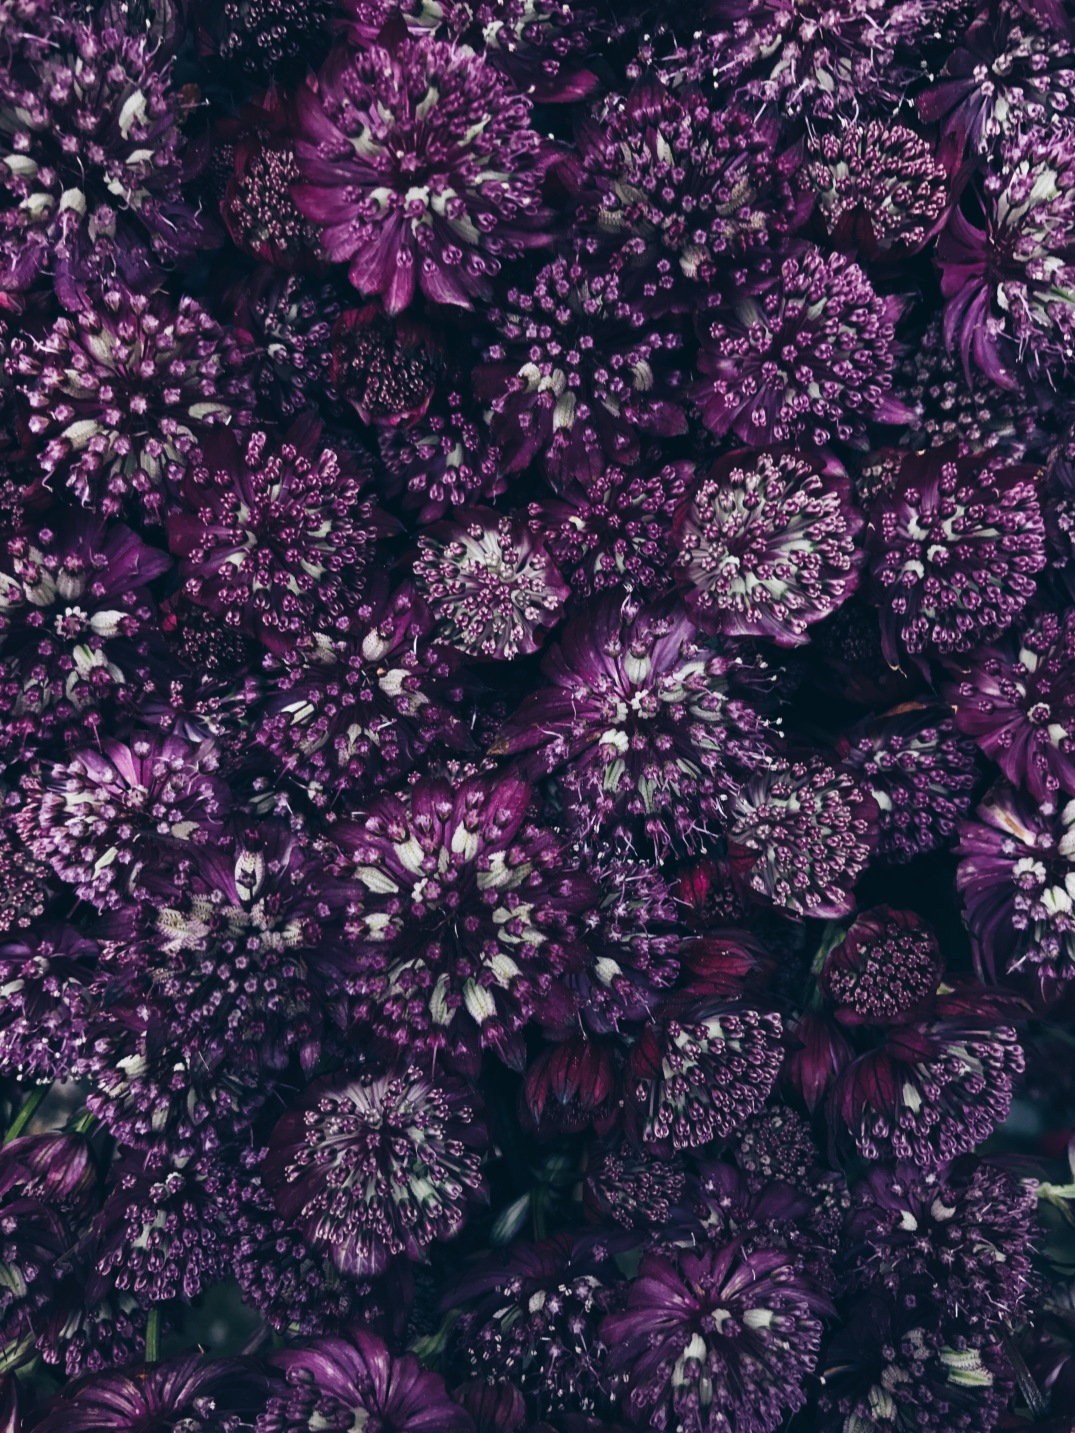 deep purple astrantia